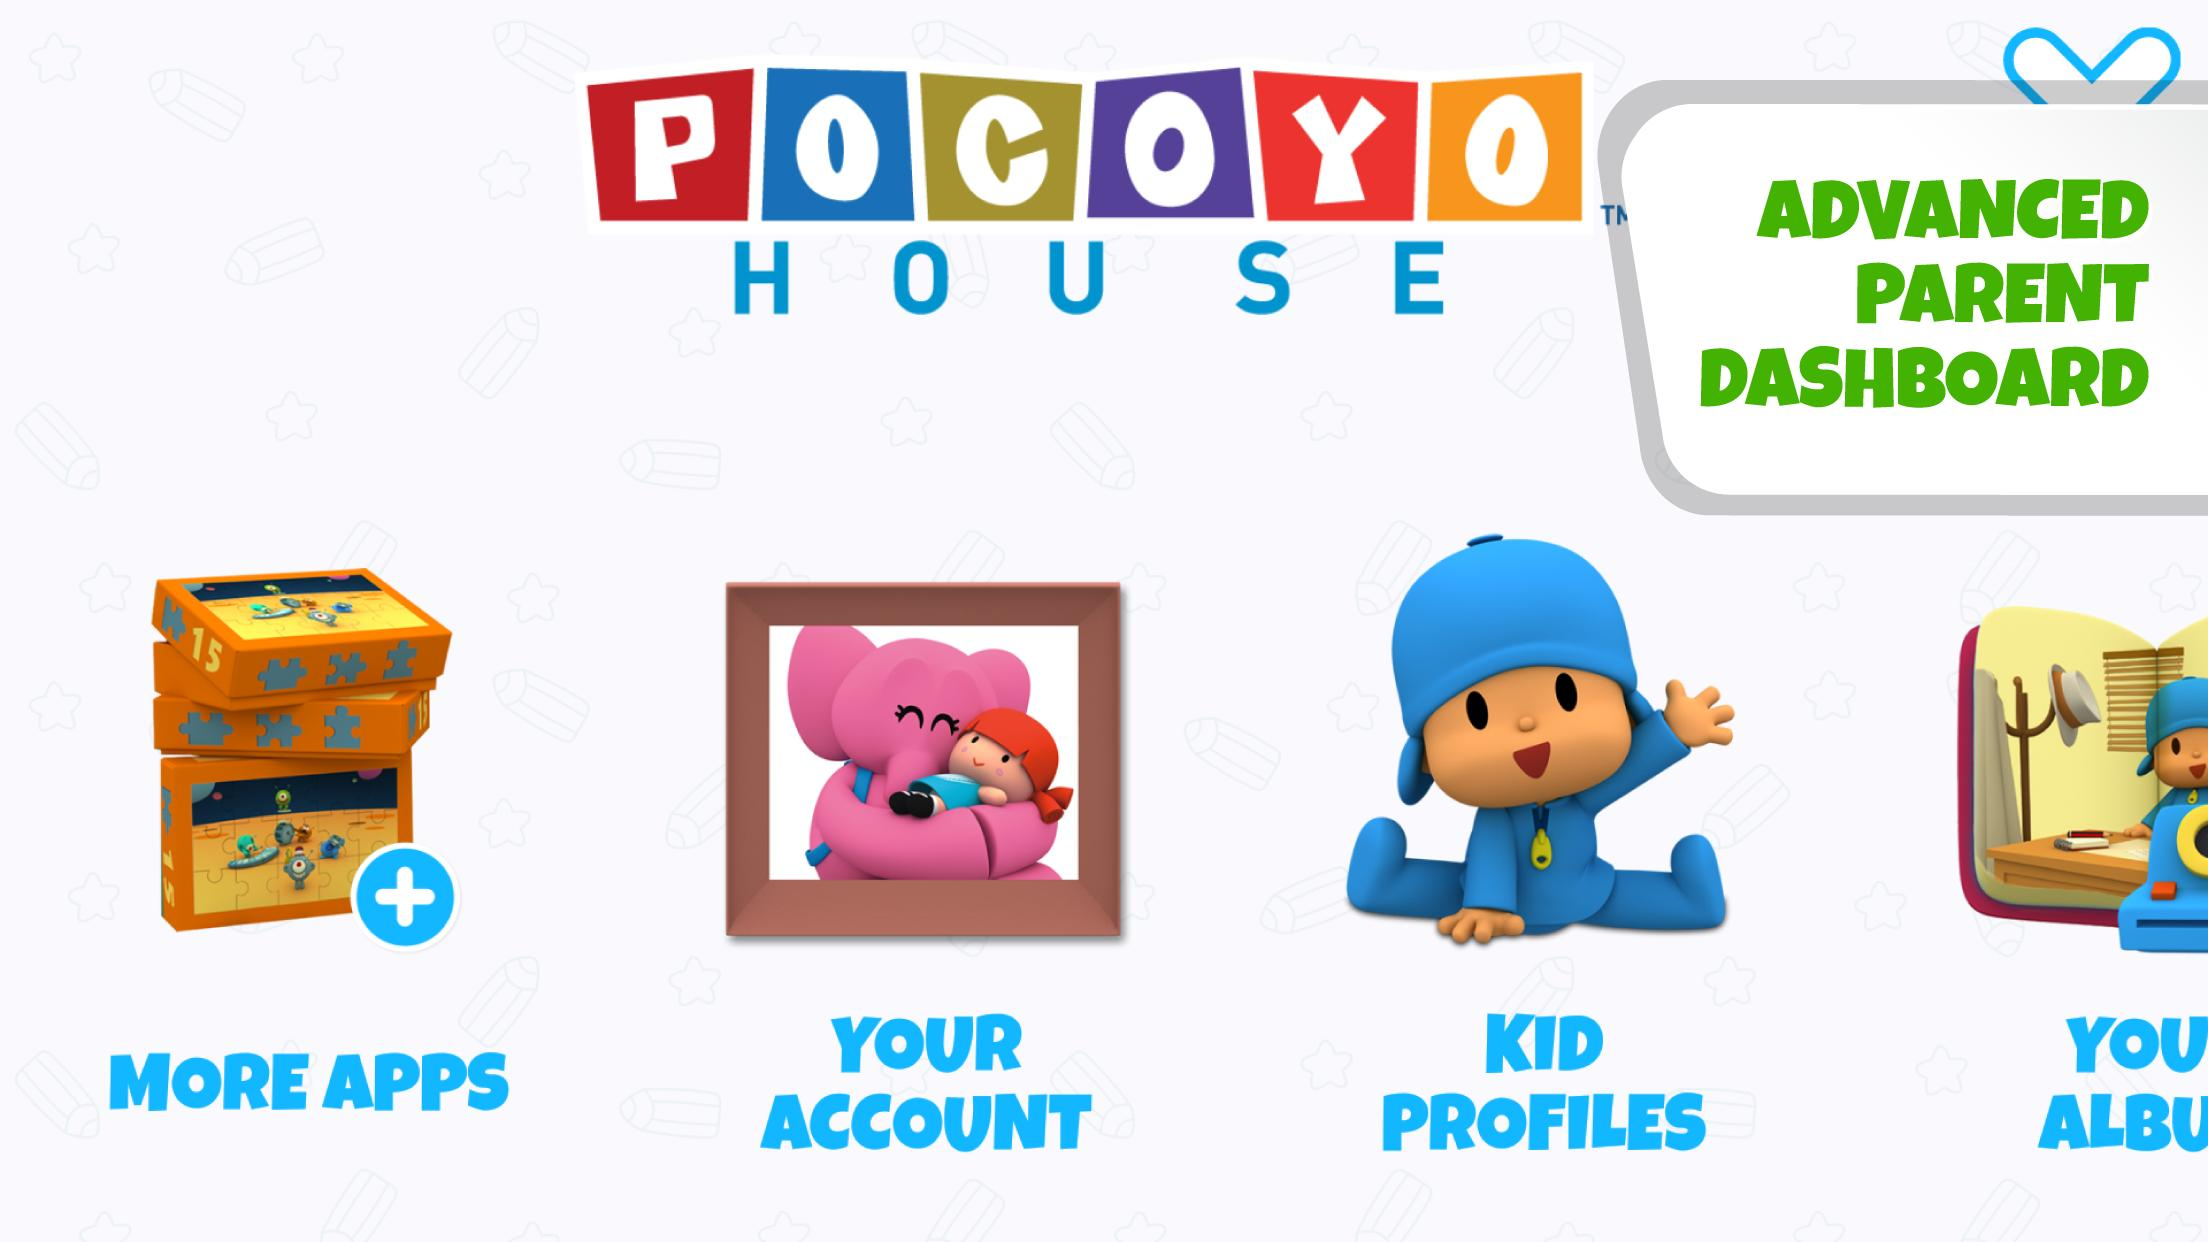 Pocoyo House best videos and apps for kids 3.1.3 Screenshot 4